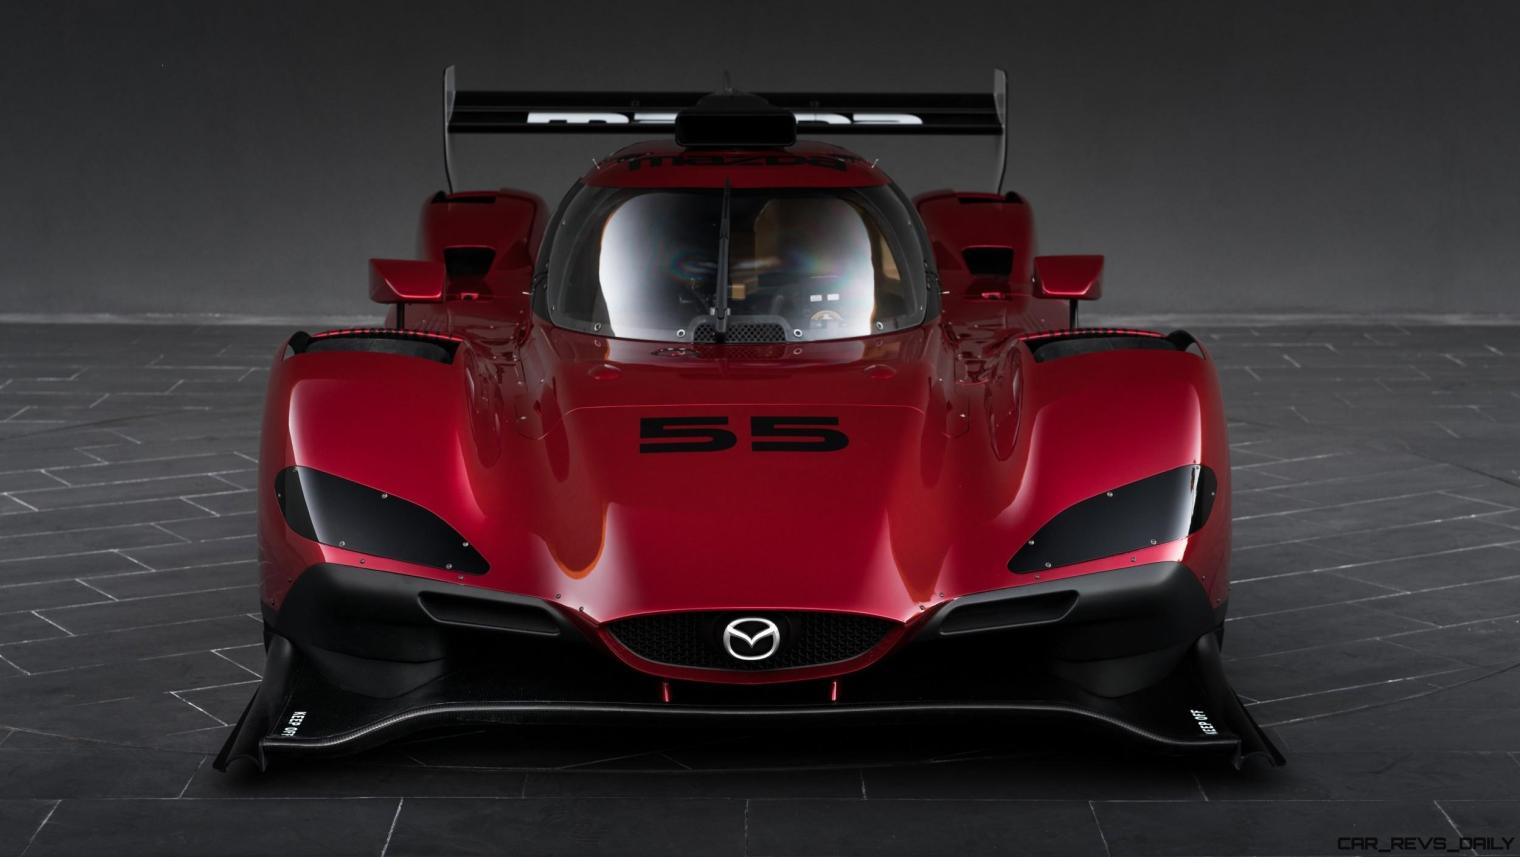 2017_rt24p_front_001